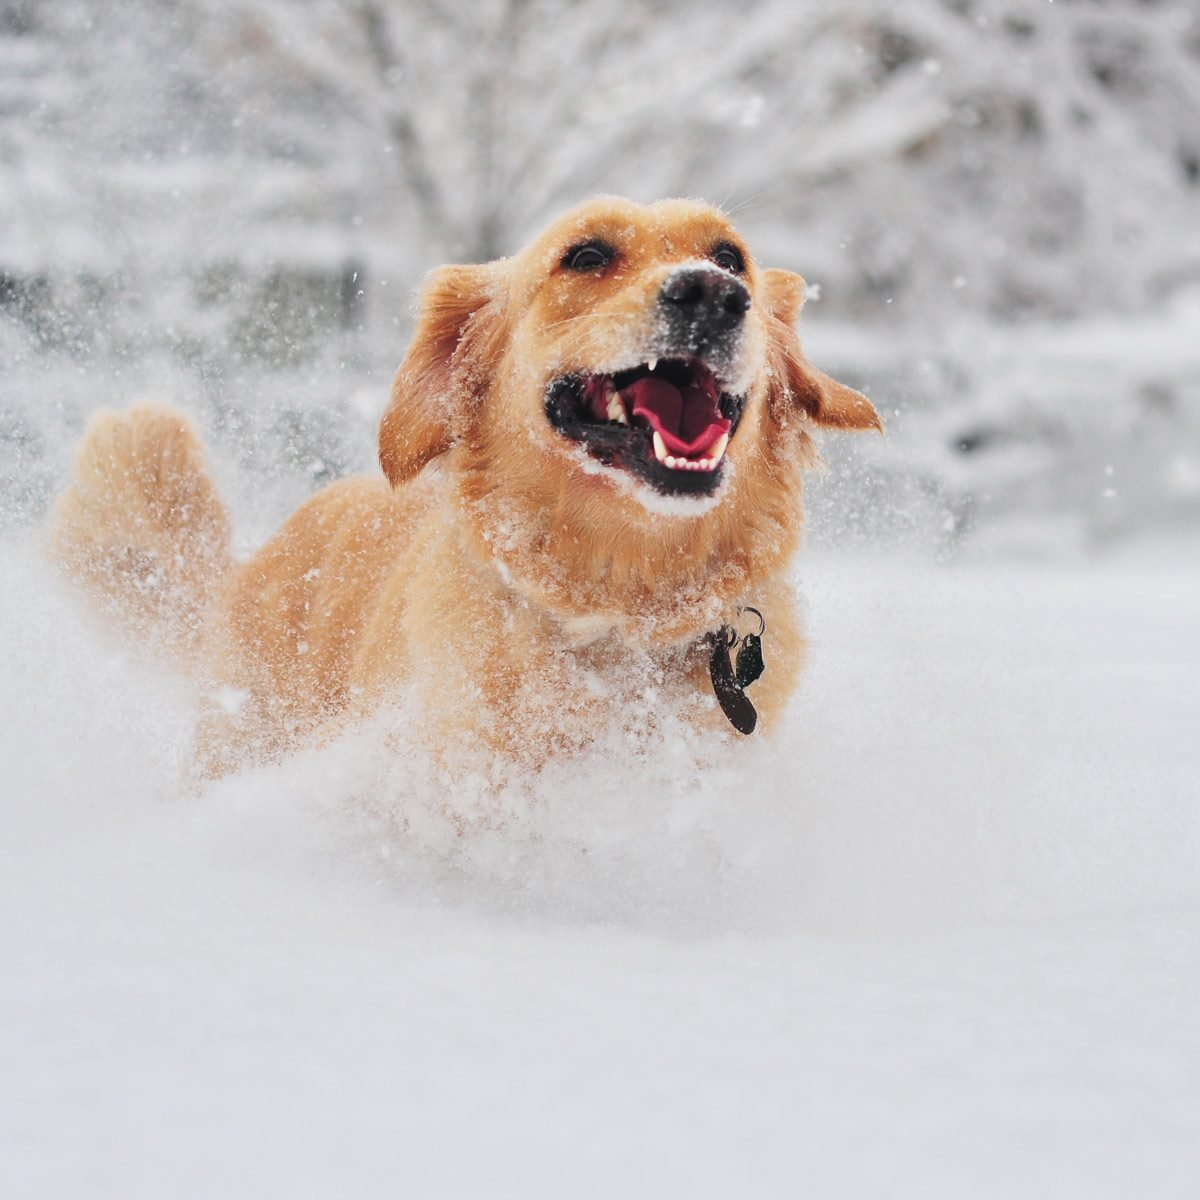 10 Important Tips for Keeping Your Pets Safe This Winter